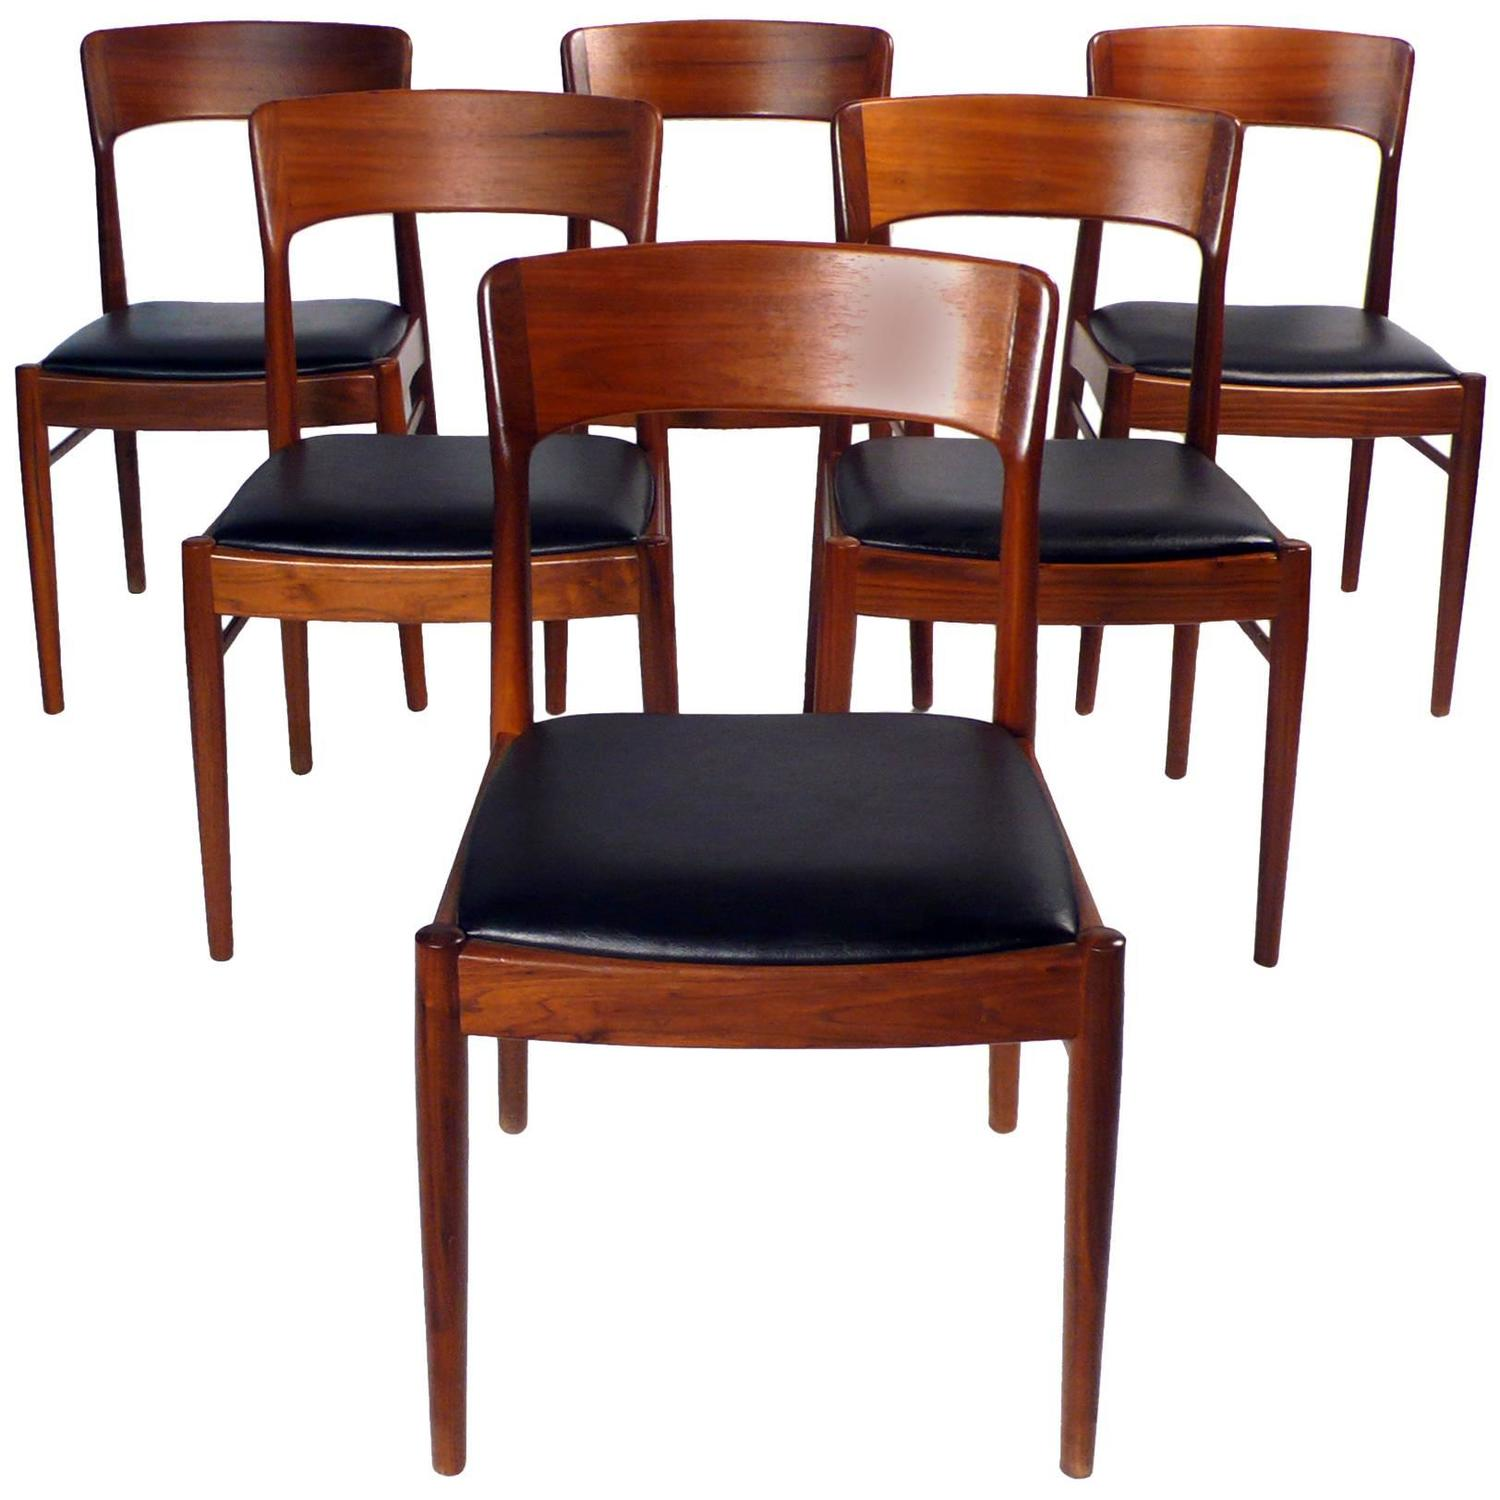 Dining Table With Chairs For Sale: KS Danish Dining Chairs For Sale At 1stdibs